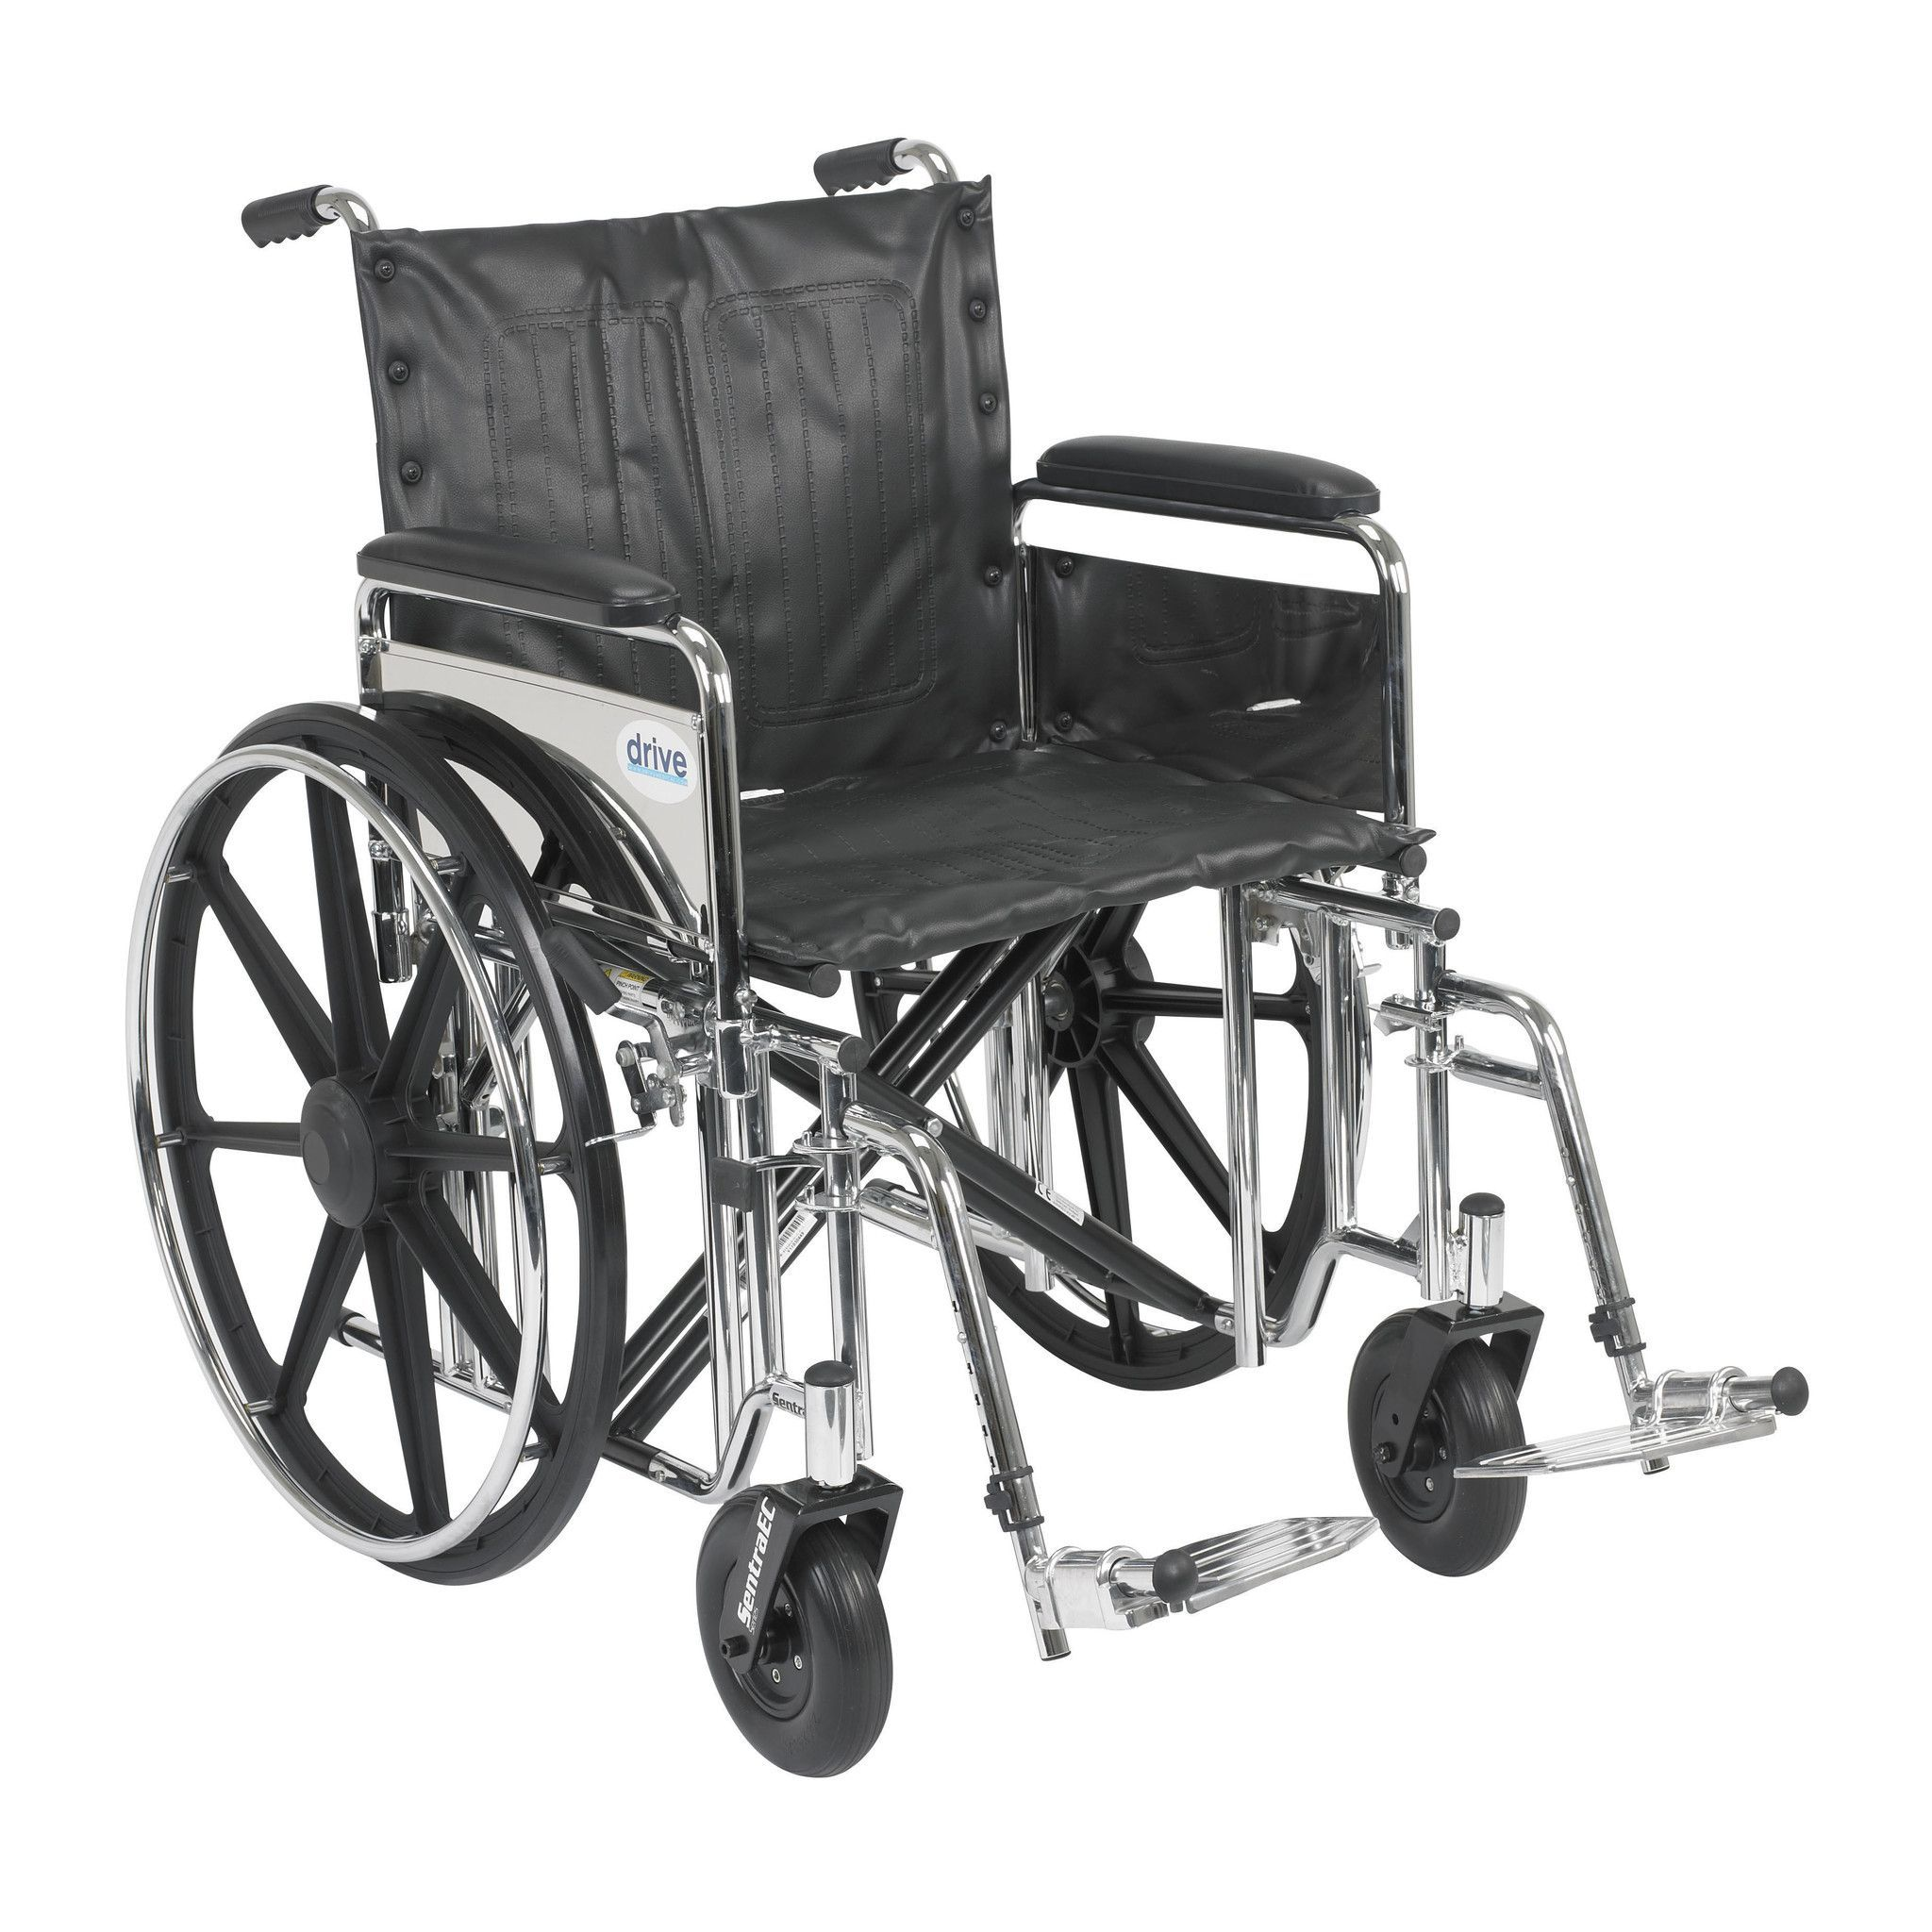 Sentra Extra Heavy Duty Wheelchair, Detachable Full Arms